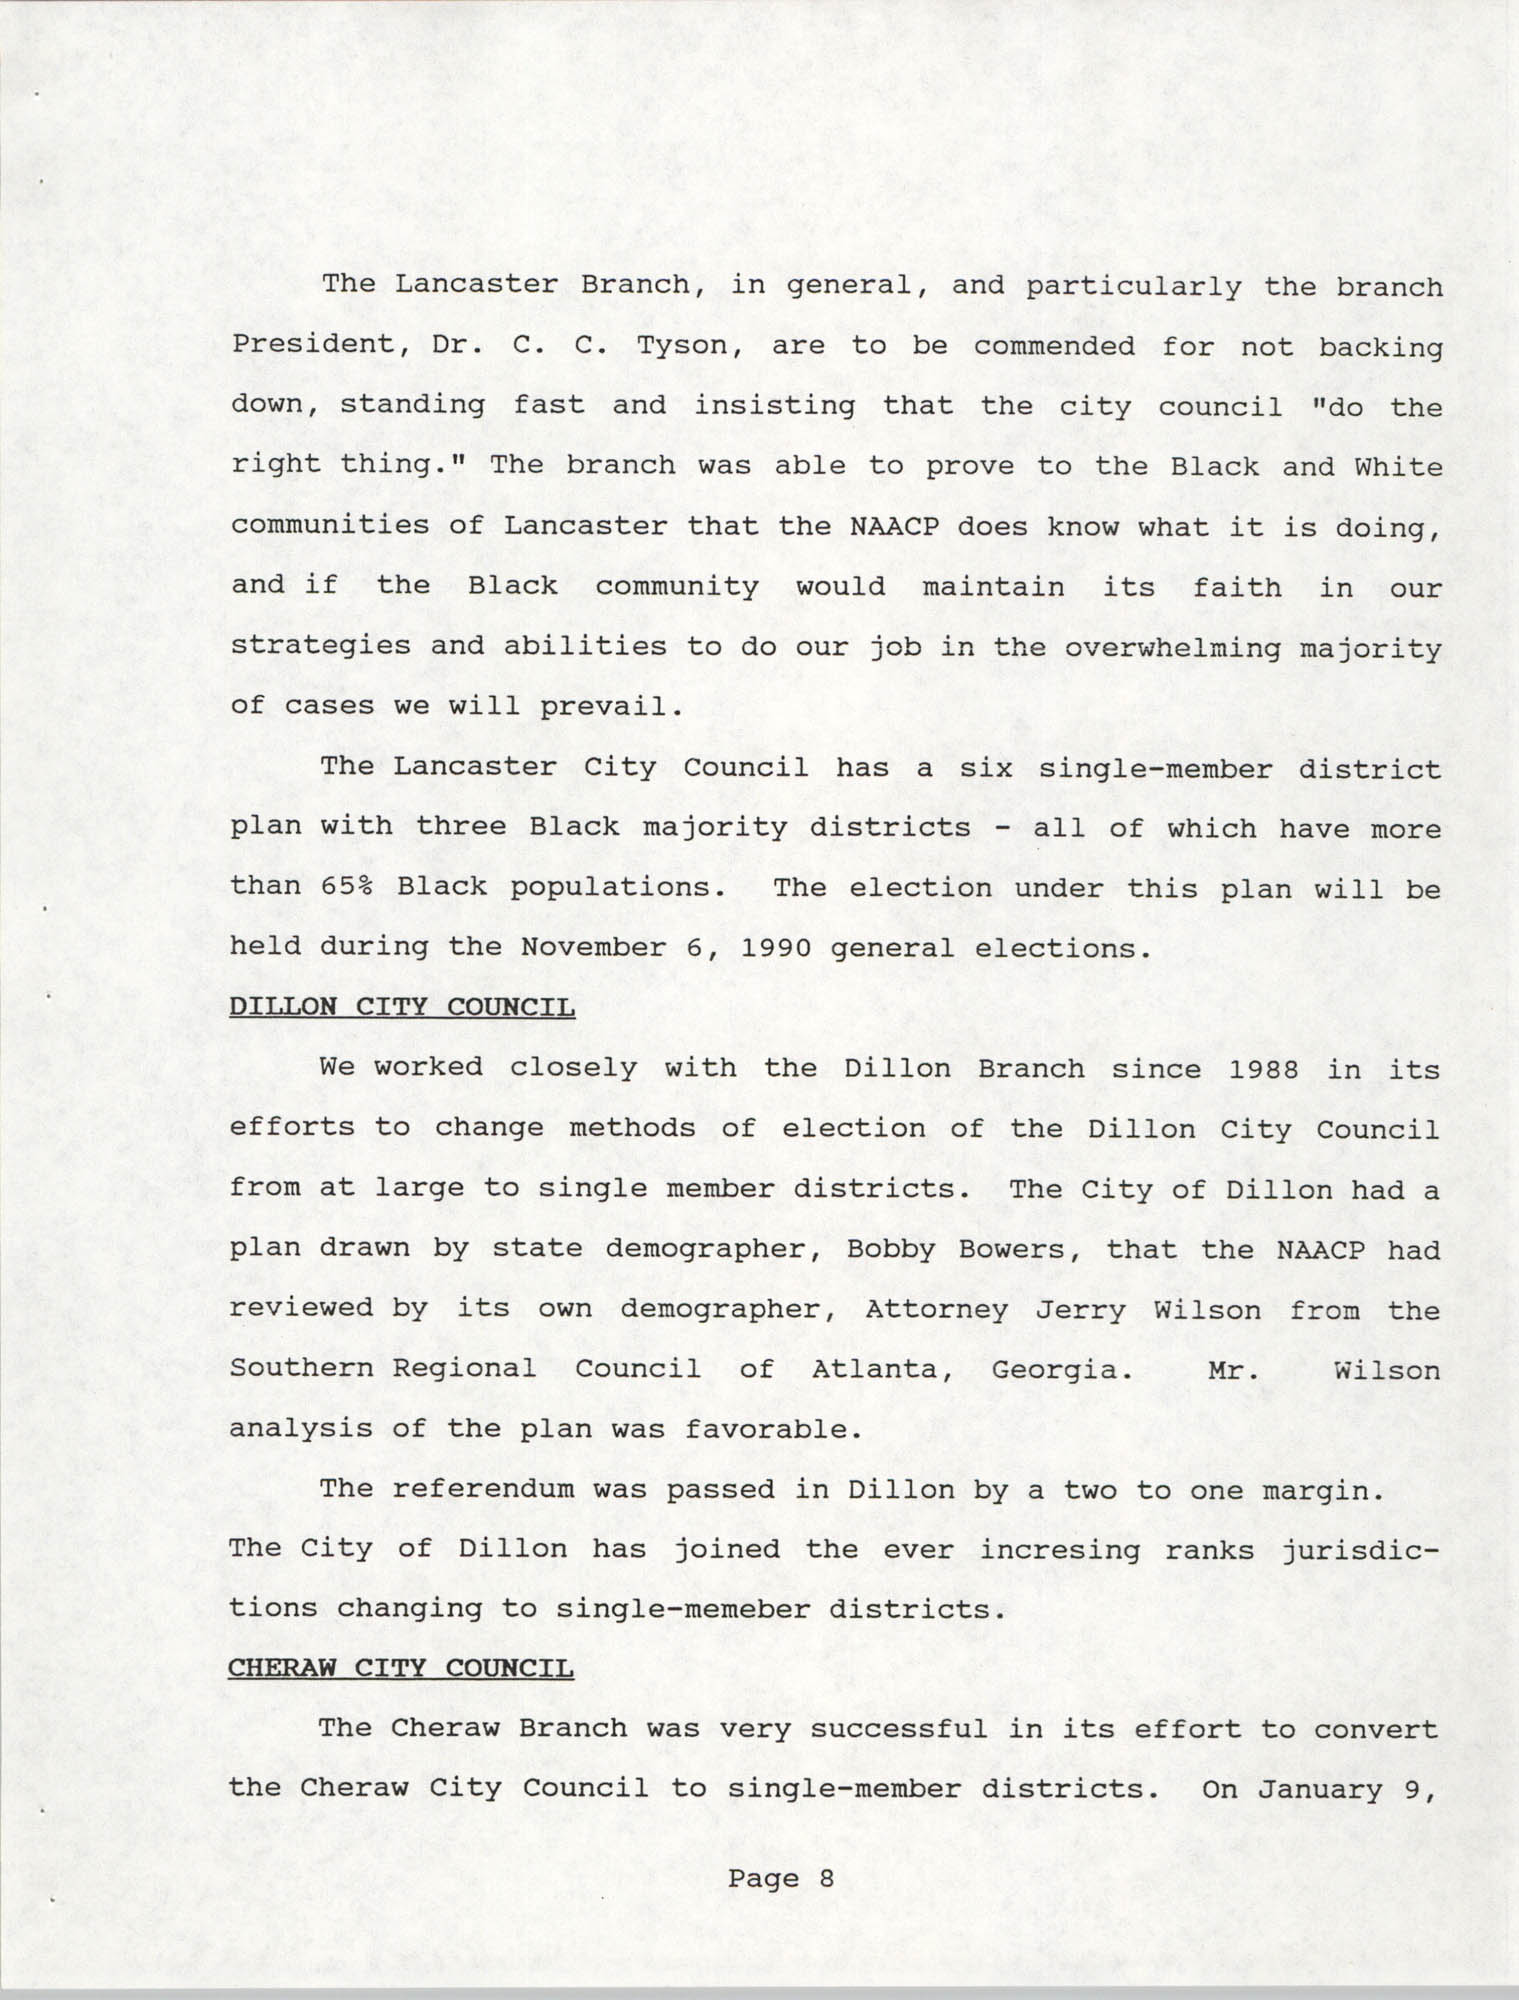 South Carolina Conference of Branches of the NAACP, 1990 Annual Report, Part One, Page 8